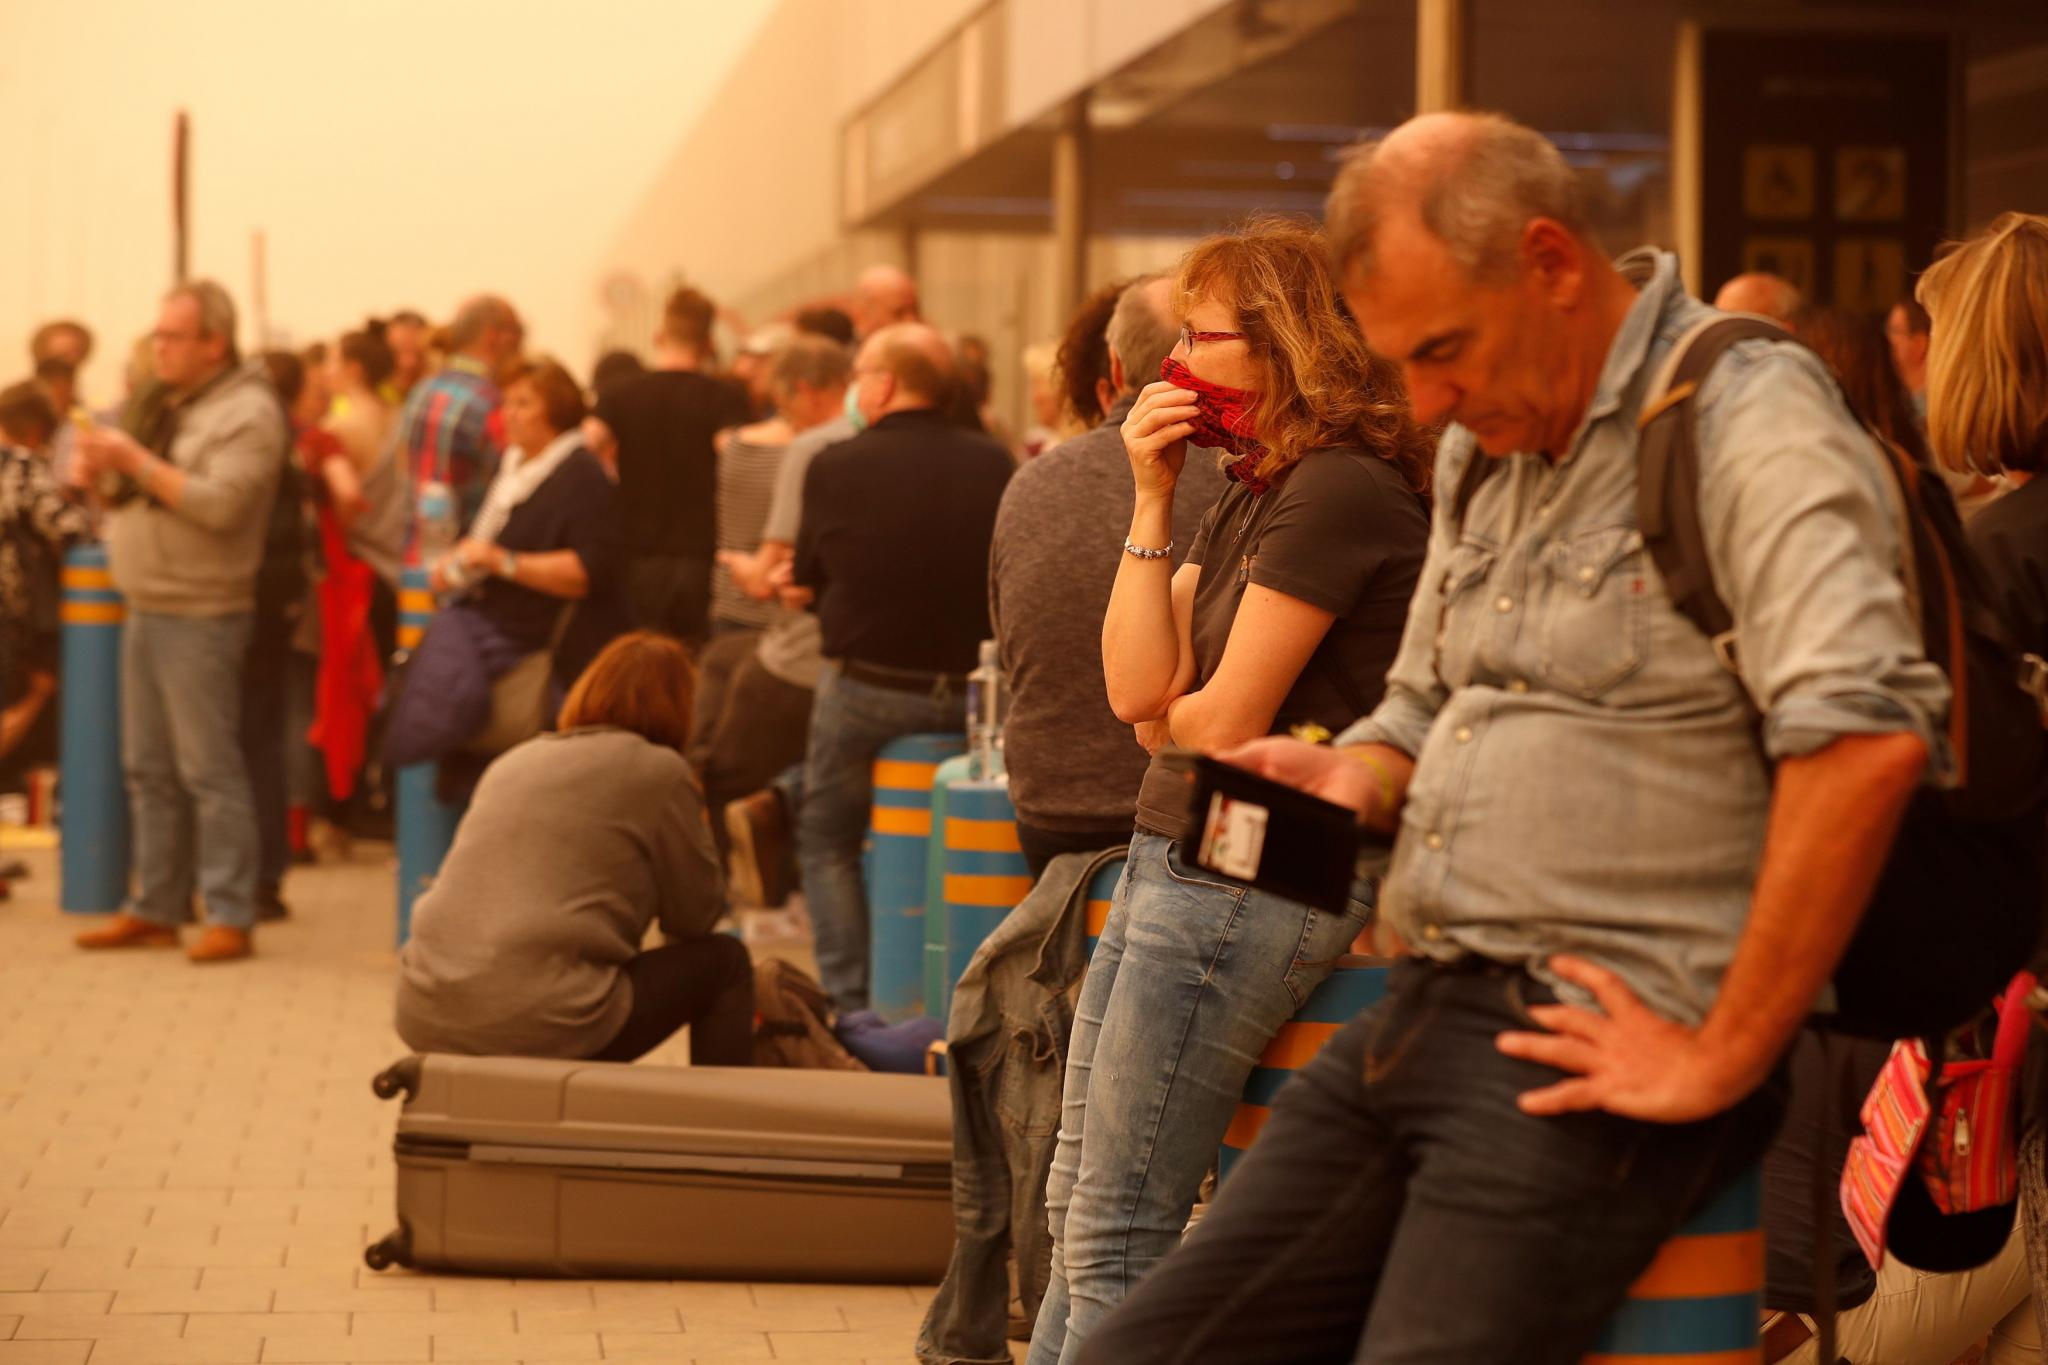 """Stranded passengers wait at Las Palmas Airport in Gran Canaria, as a sandstorm locally known as """"calima"""" closed air traffic in the Canary Islands"""